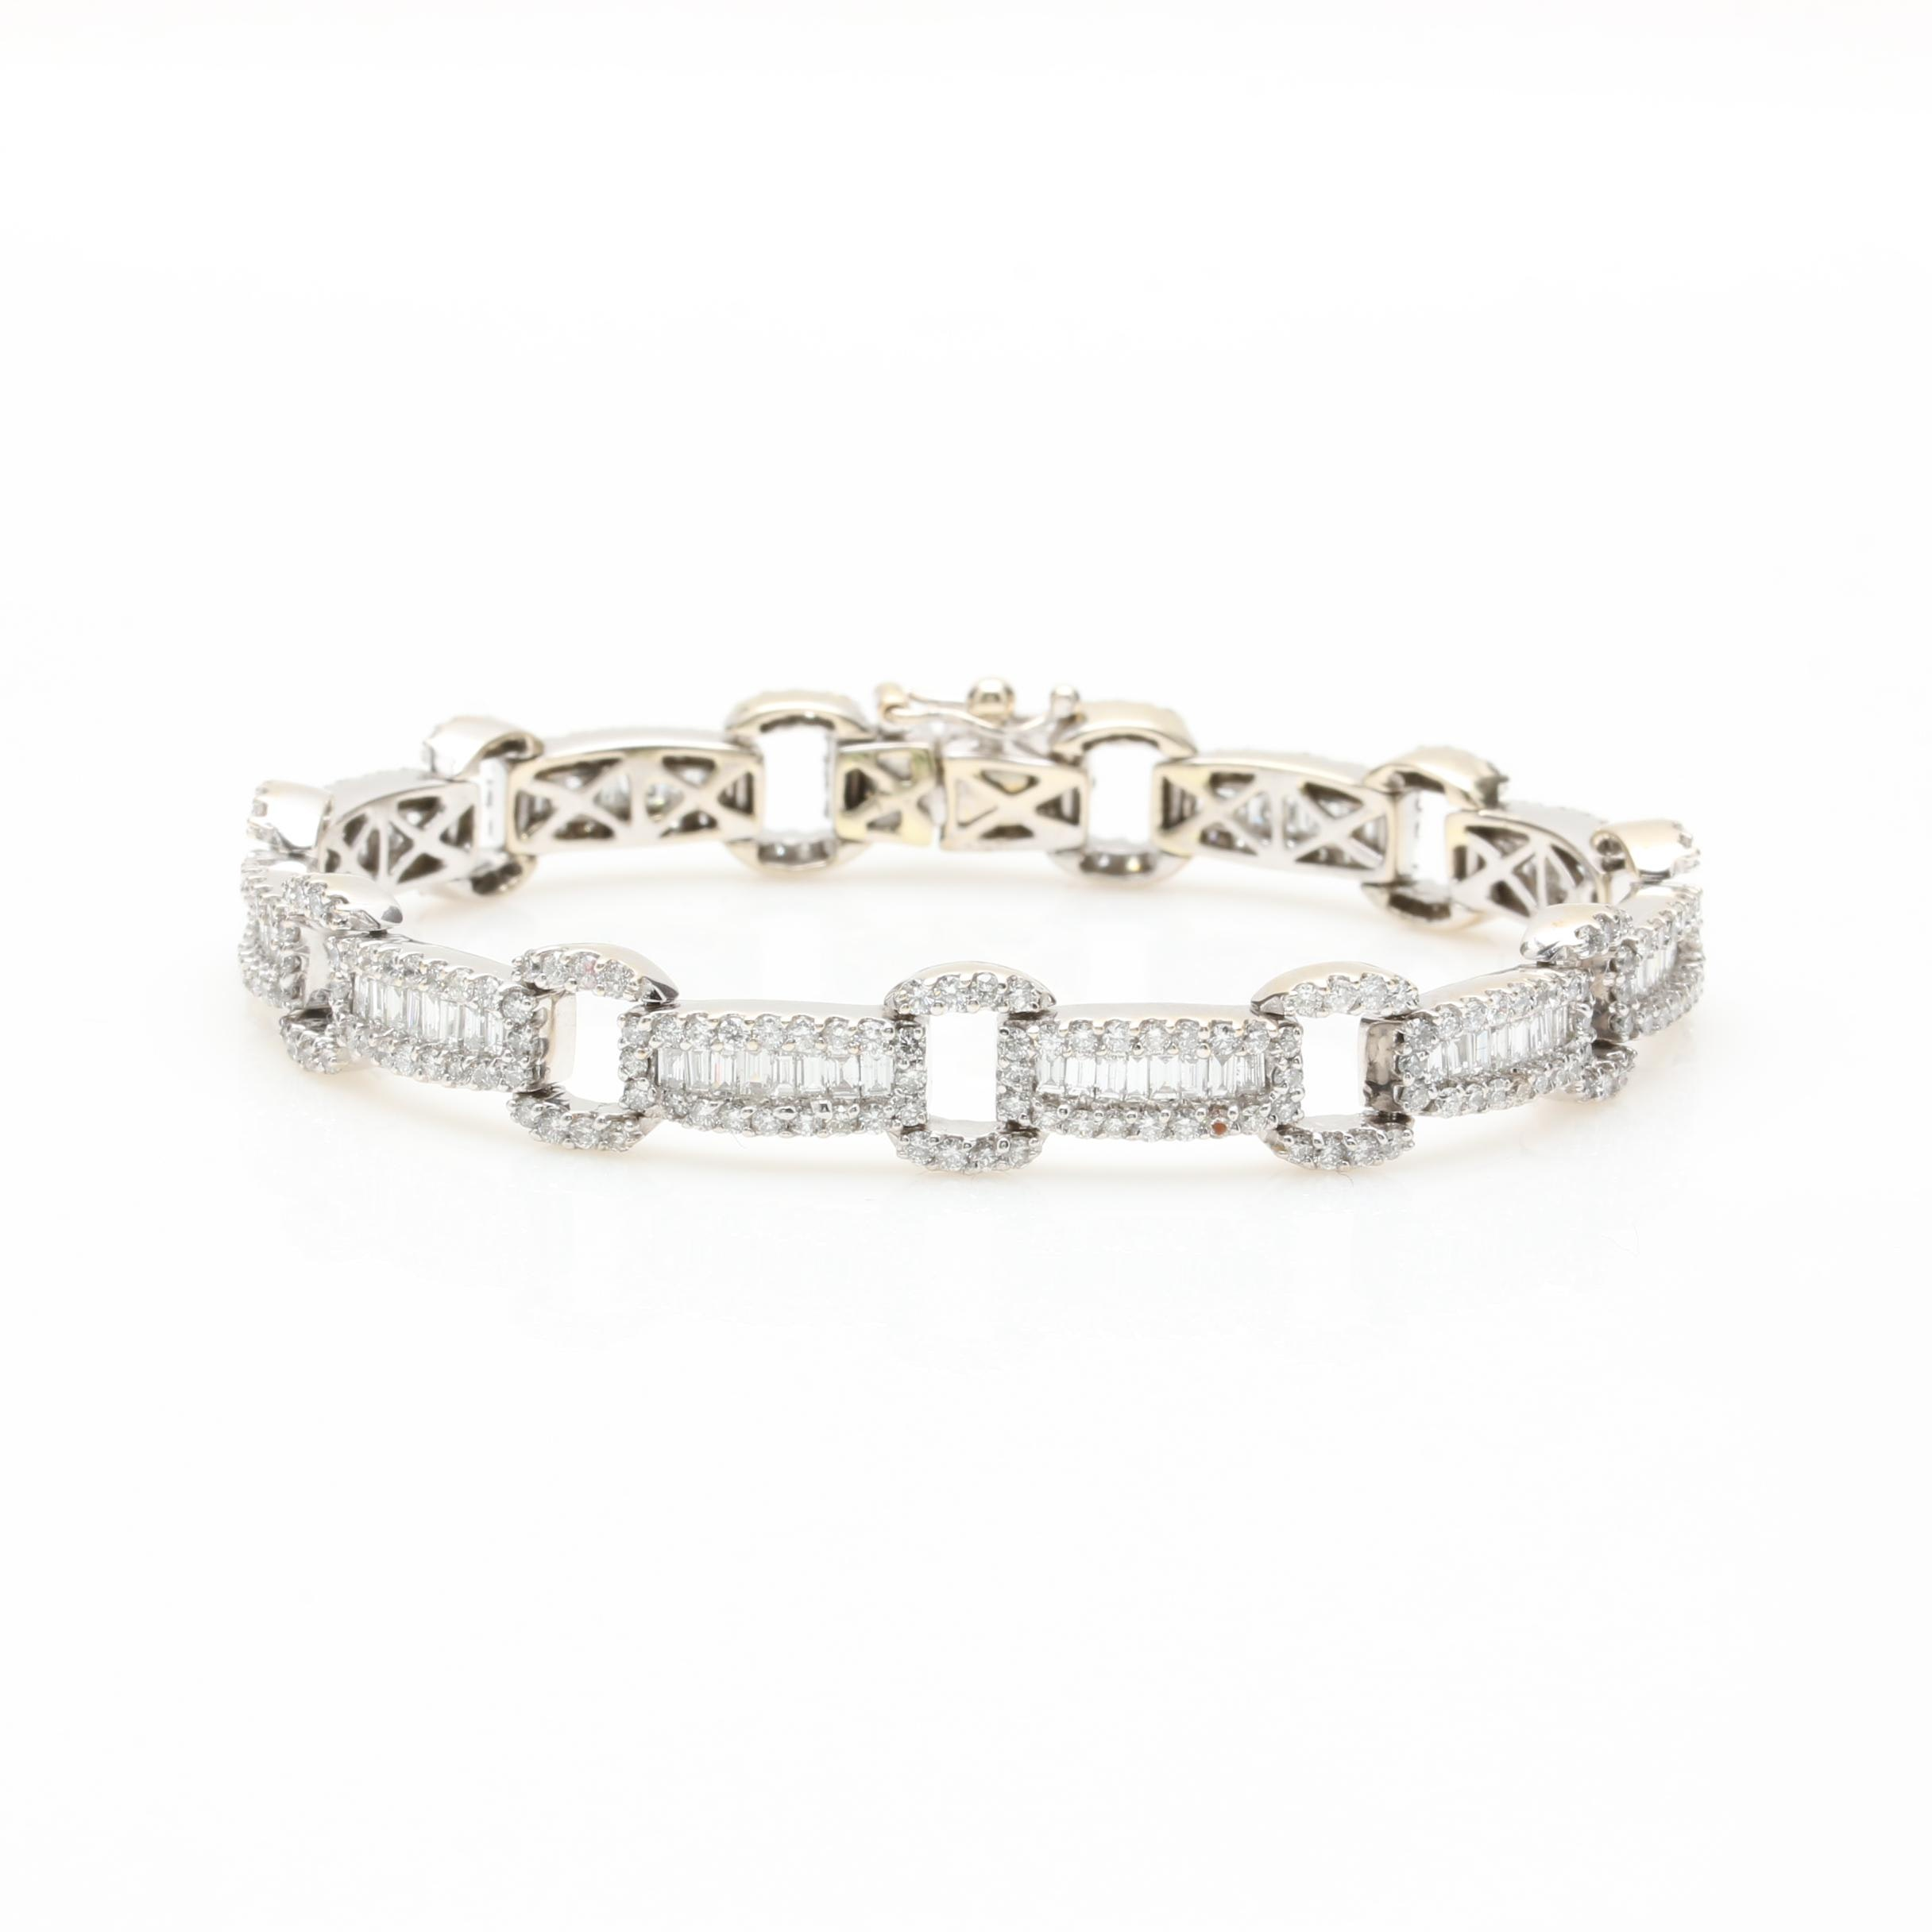 14K White Gold 5.03 CTW Diamond Bracelet